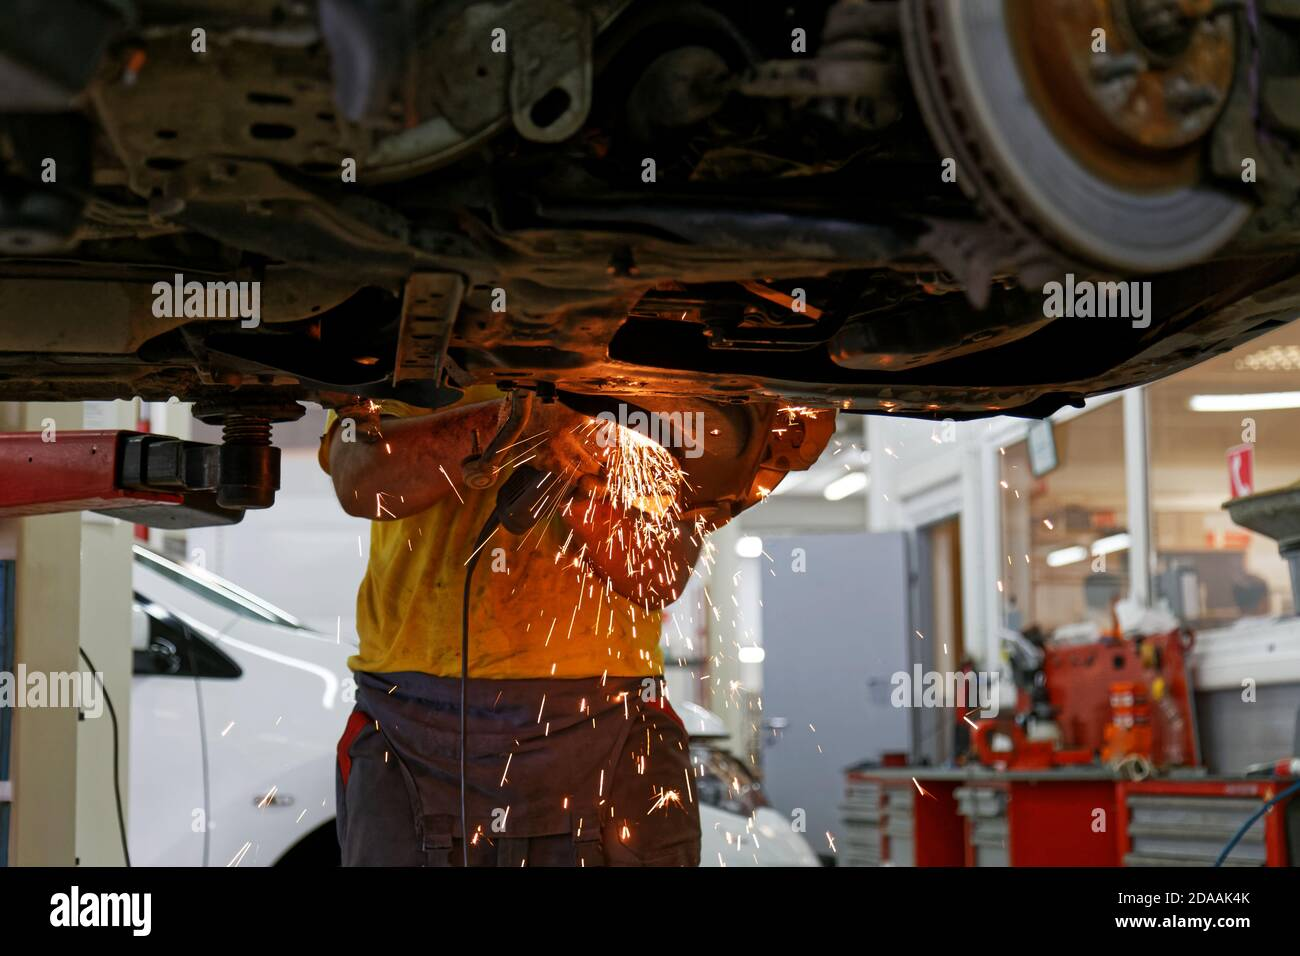 Worker of car service cleans old metal parts from rust using angle grinder. Sparks are flying in different directions. Stock Photo